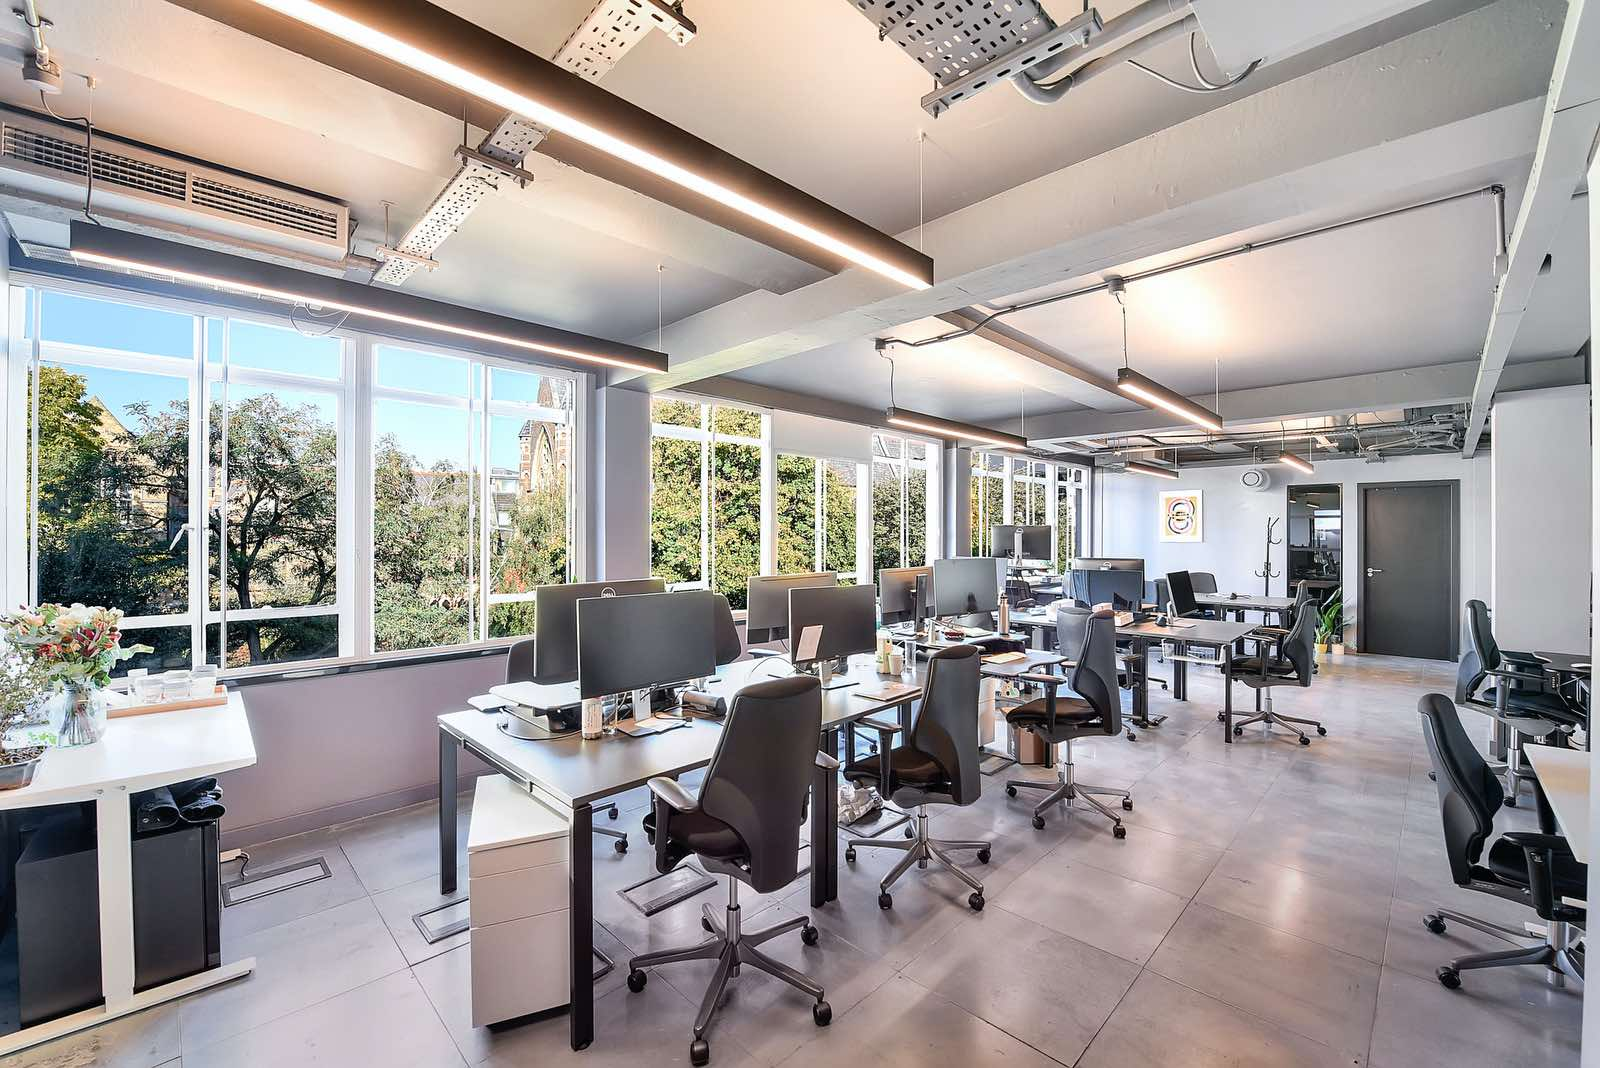 What is a serviced office? Flexible Office Terms That Work Around You and Your Business